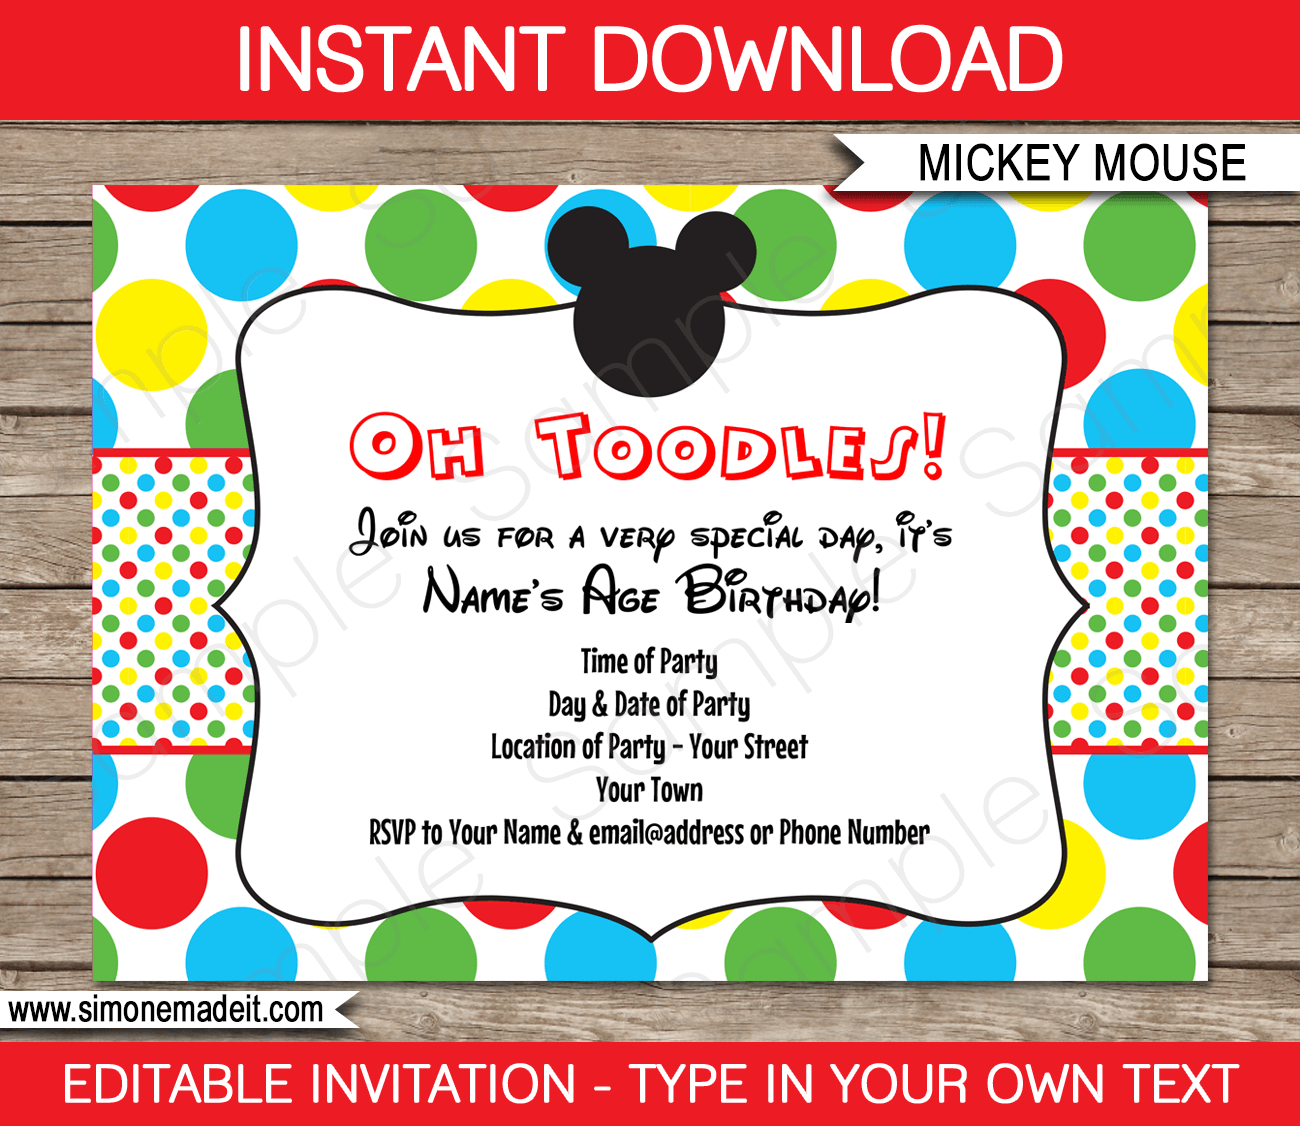 Mickey Mouse Party Invitations Template – Mickey Mouse Invitation Template